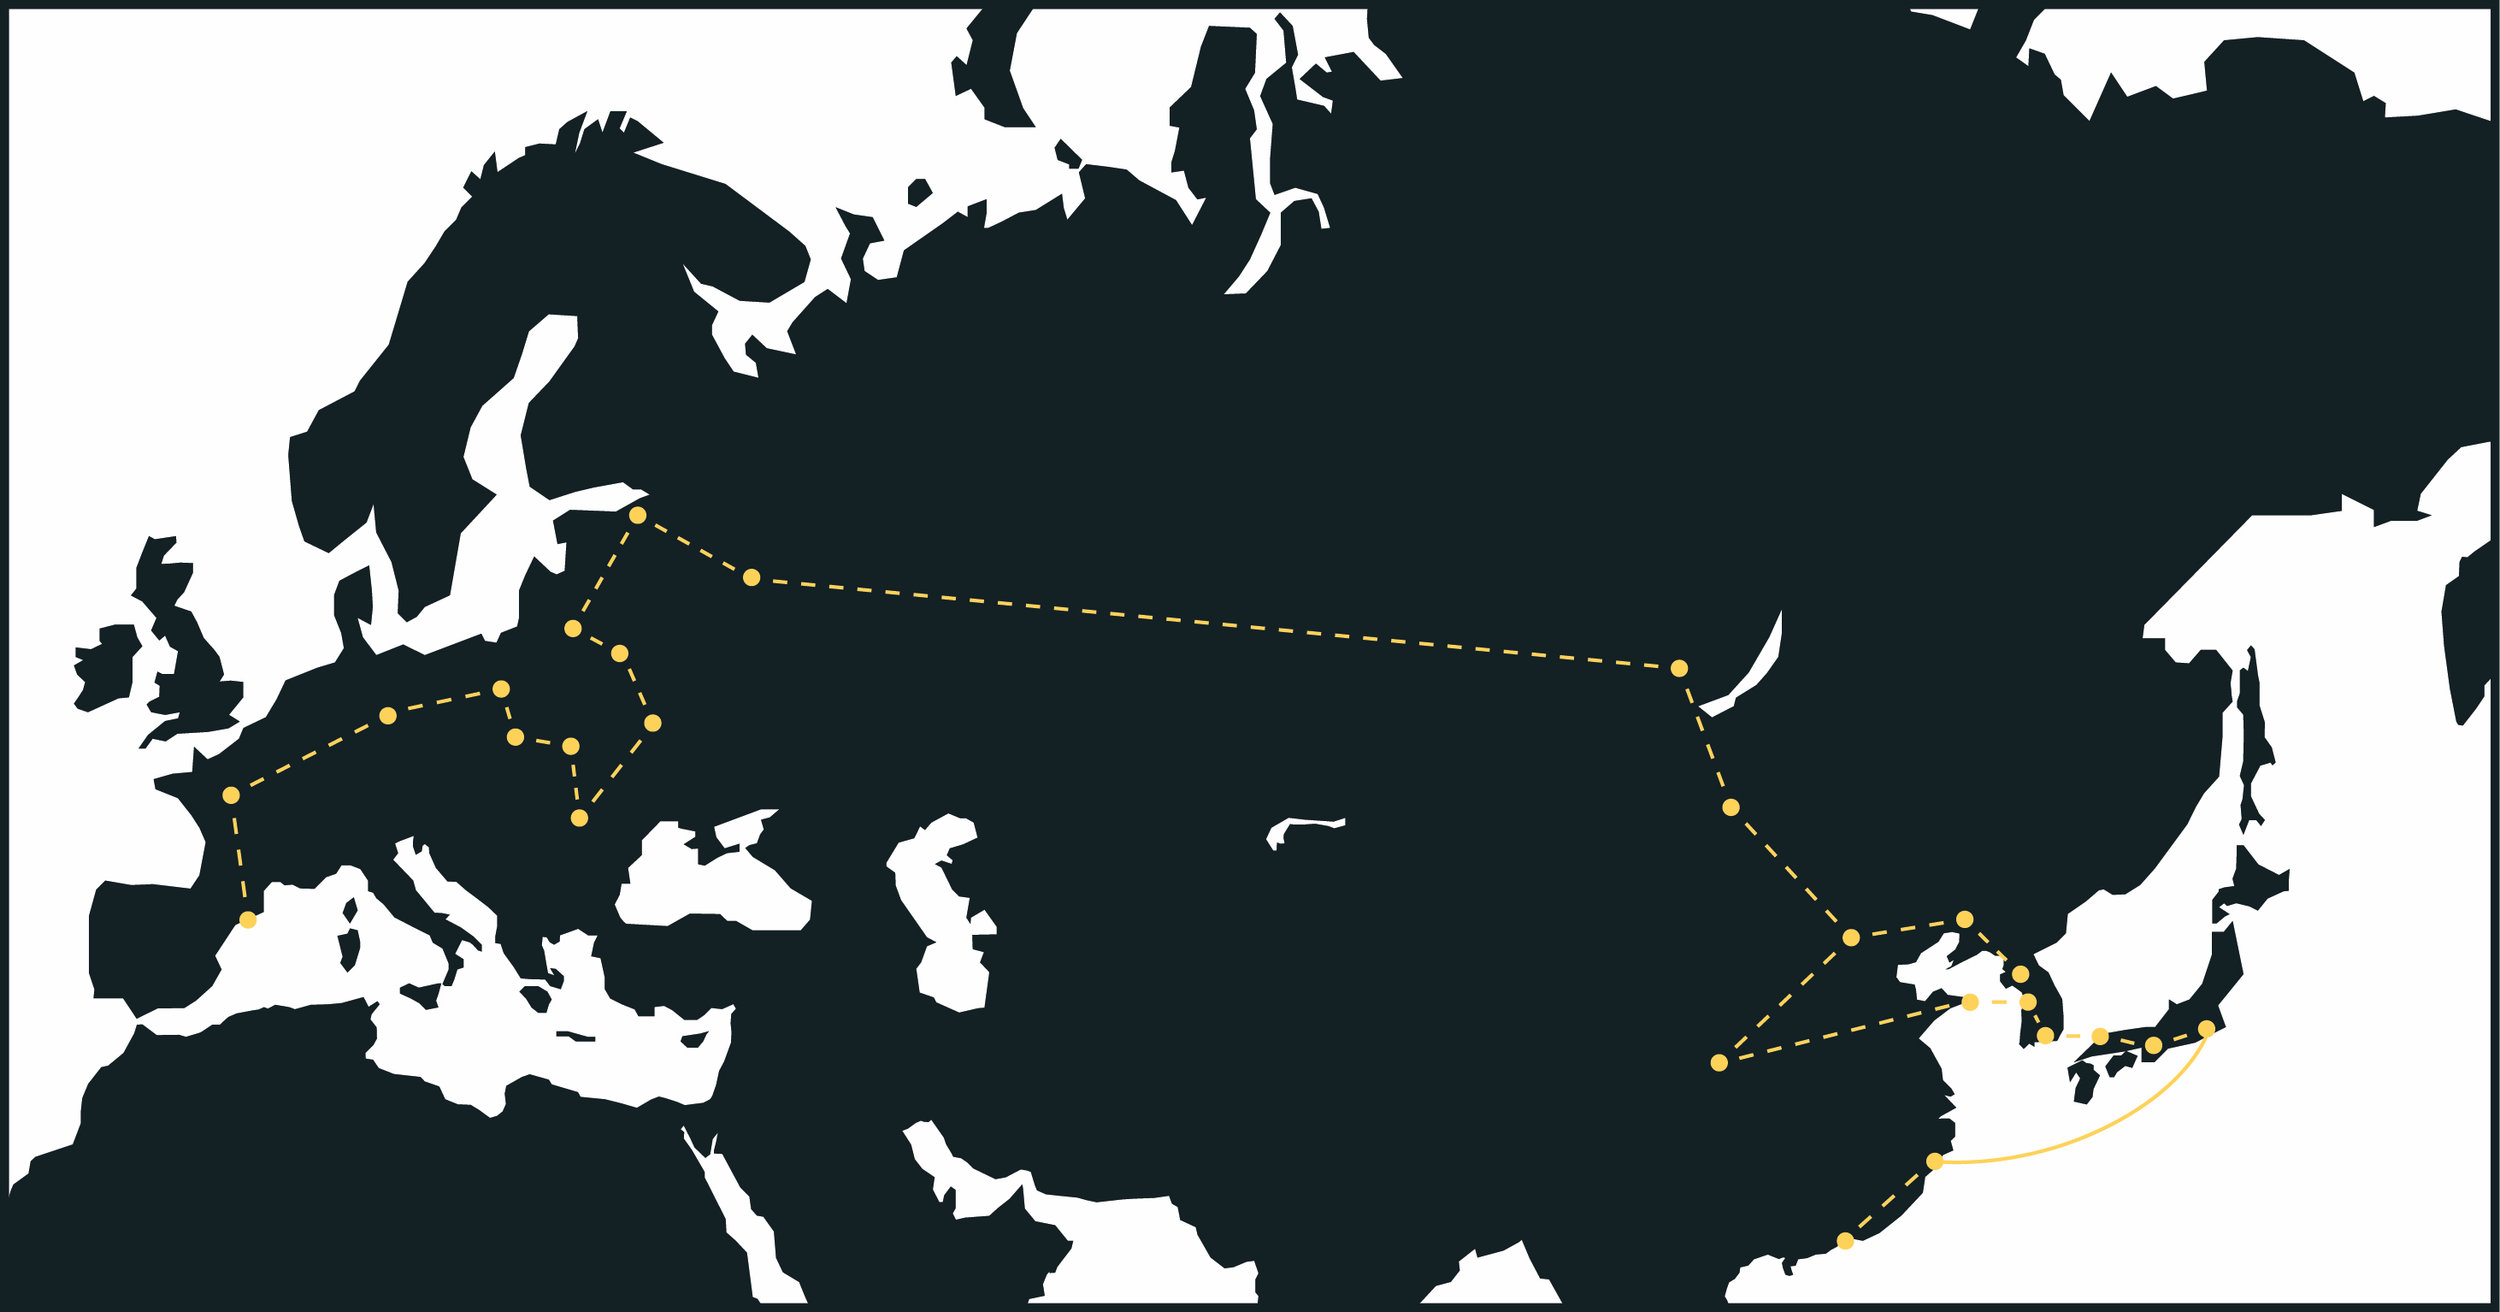 Map showing the extent of my travels between January & May 2017. The solid line indicates a flight taken between Tokyo and Shanghai.